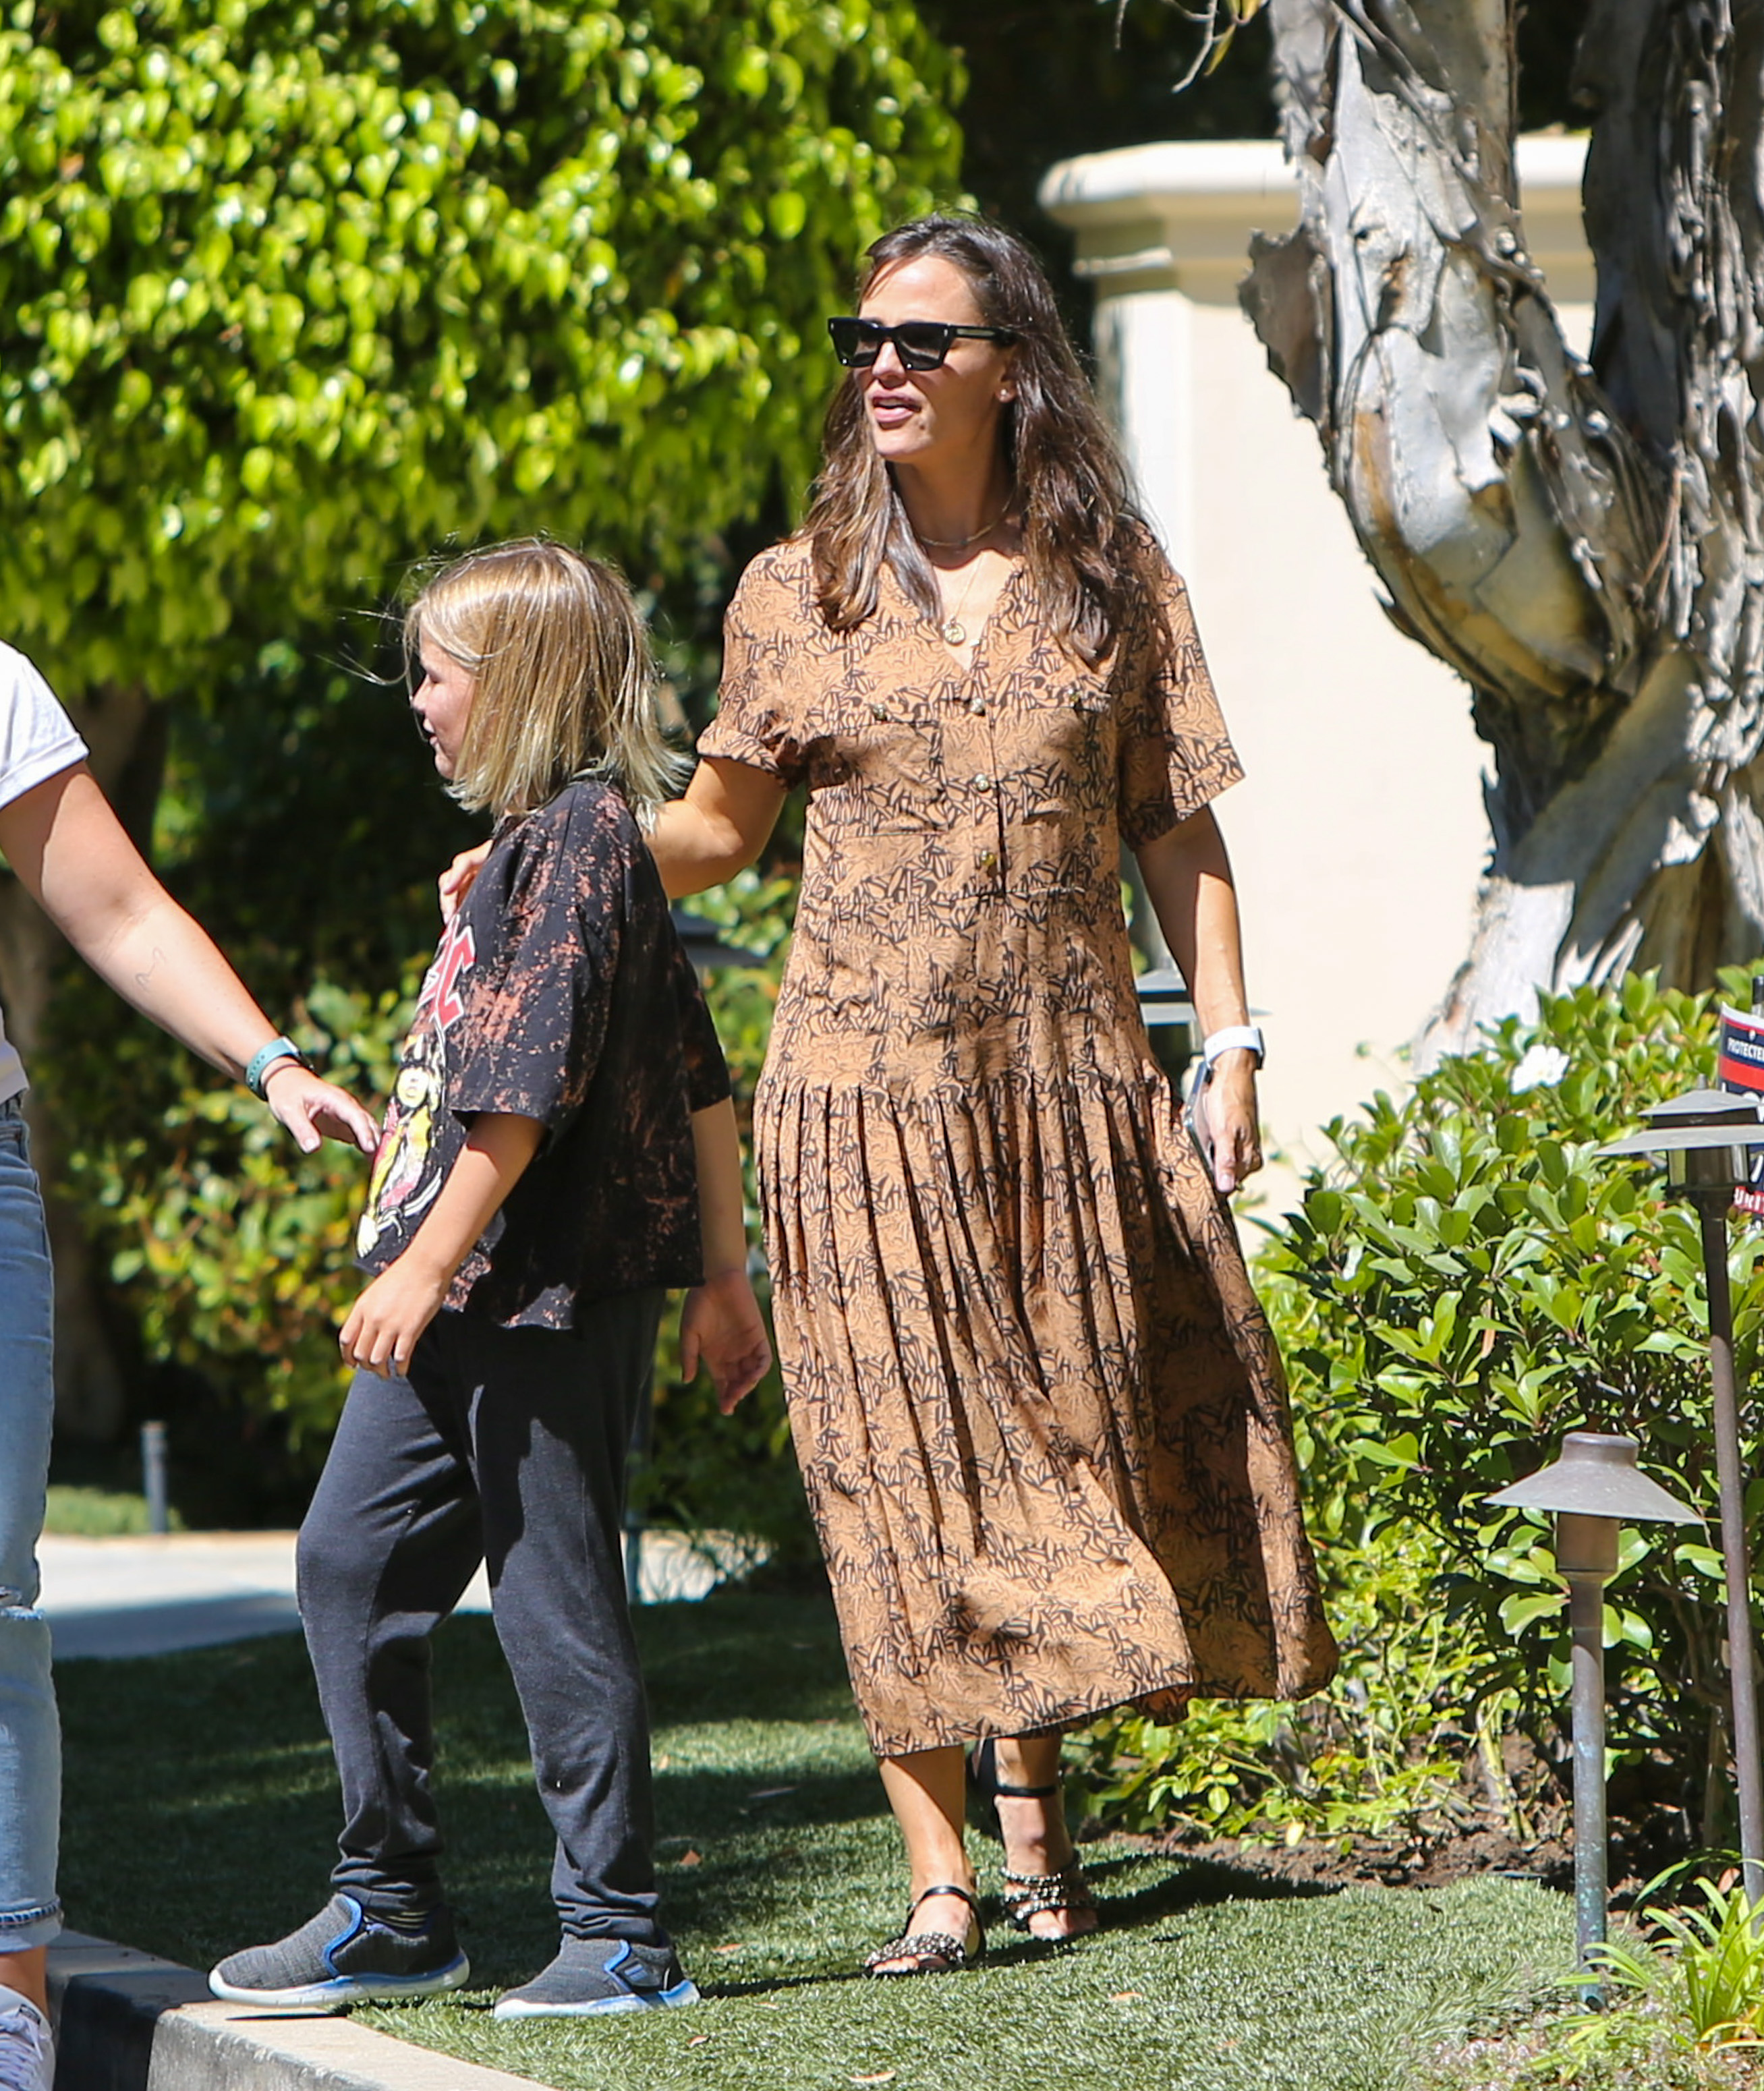 Jennifer Garner is seen with Violet, Seraphina and Samuel Affleck in Los Angeles, California. NON-EXCLUSIVE September 11, 2021 210911BG004 Los Angeles, CA www.bauergriffin.com. 11 Sep 2021 Pictured: Jennifer Garner. Photo credit: BG004/Bauergriffin.com / MEGA TheMegaAgency.com +1 888 505 6342 (Mega Agency TagID: MEGA786259_004.jpg) [Photo via Mega Agency]